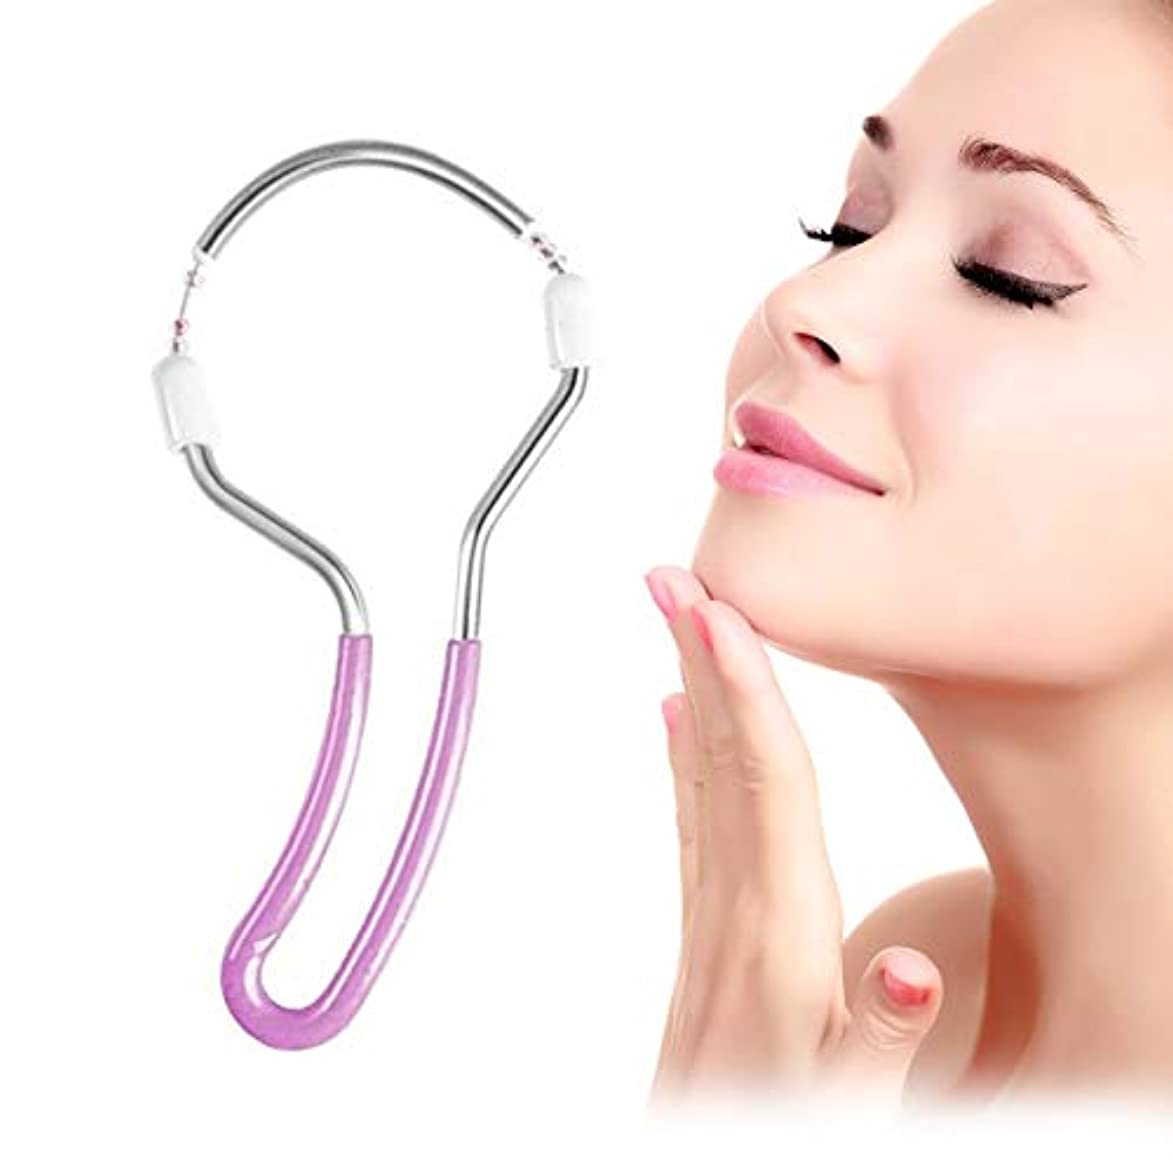 静的いたずらなタービンErgonomic Design Women Face Facial Hair Remover Stick Lightweight Hair Removal Threading Beauty Care Tools Shaving...